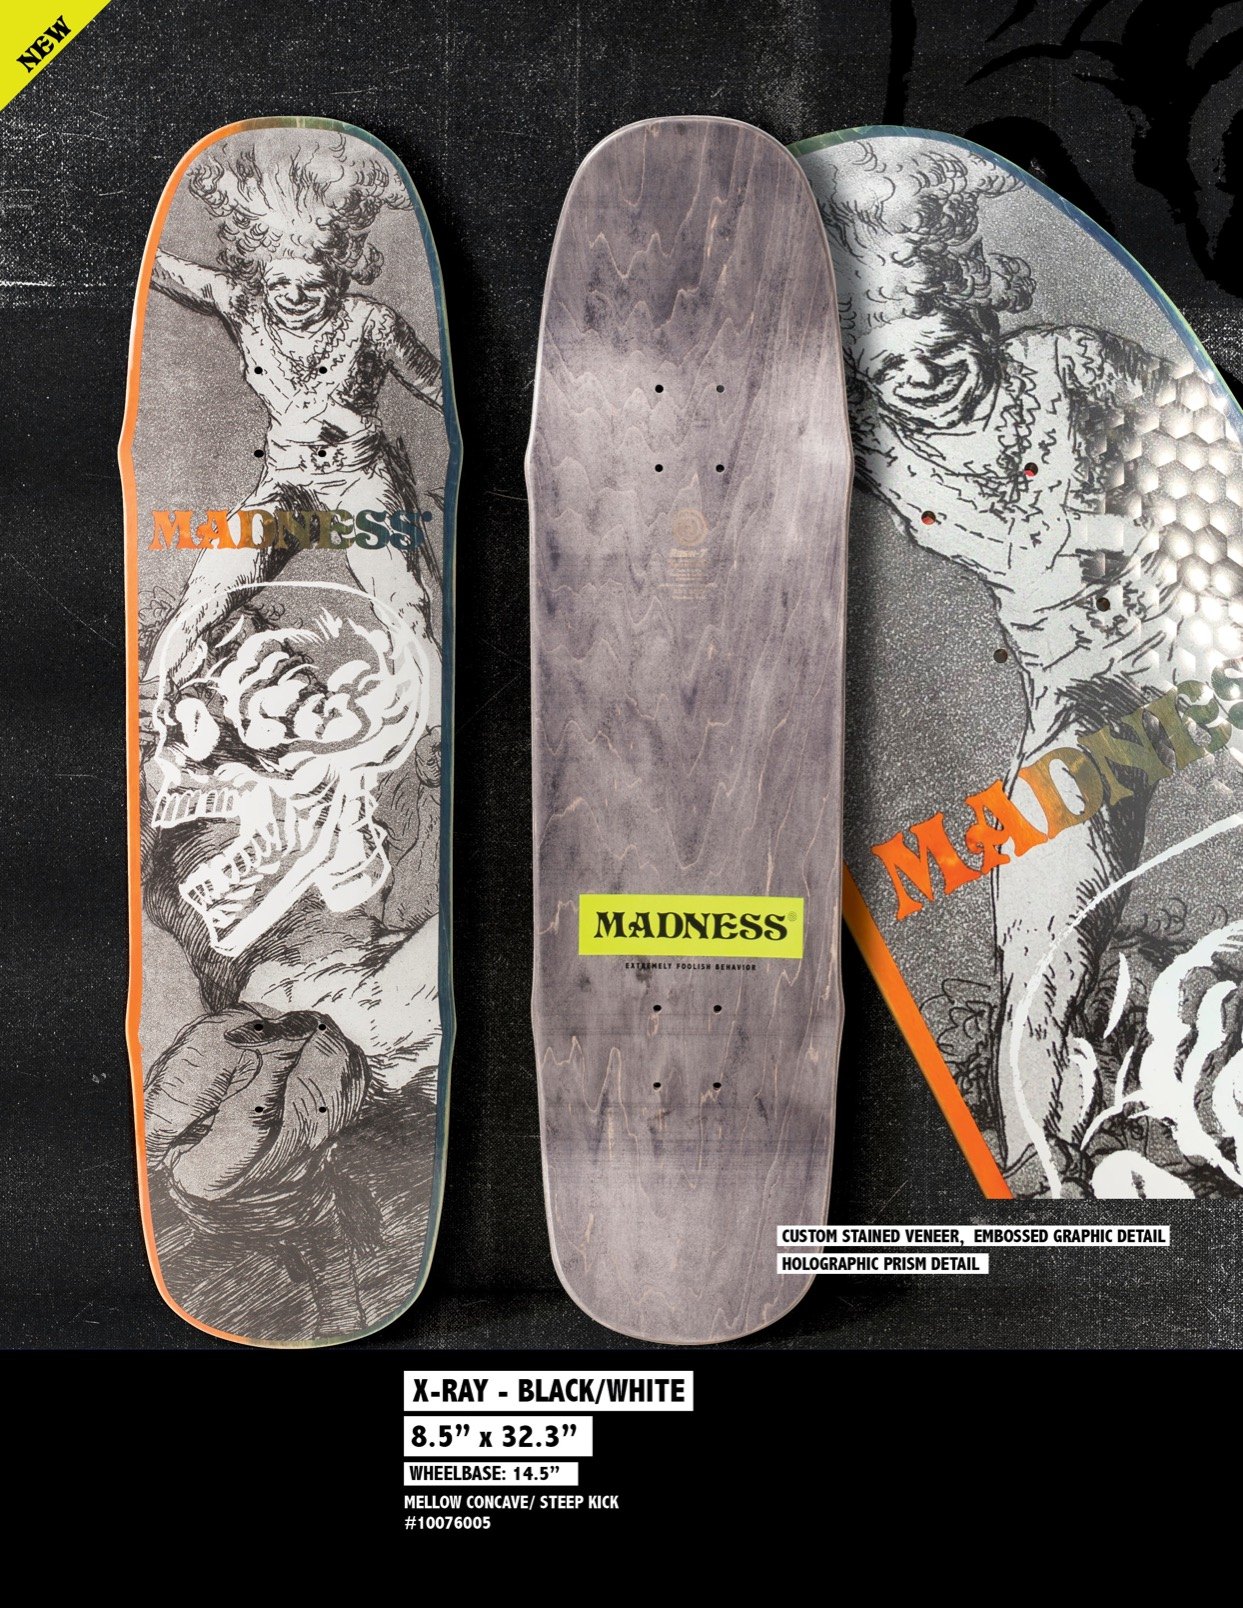 Madness_Skateboards_x-ray-black-white.jpg